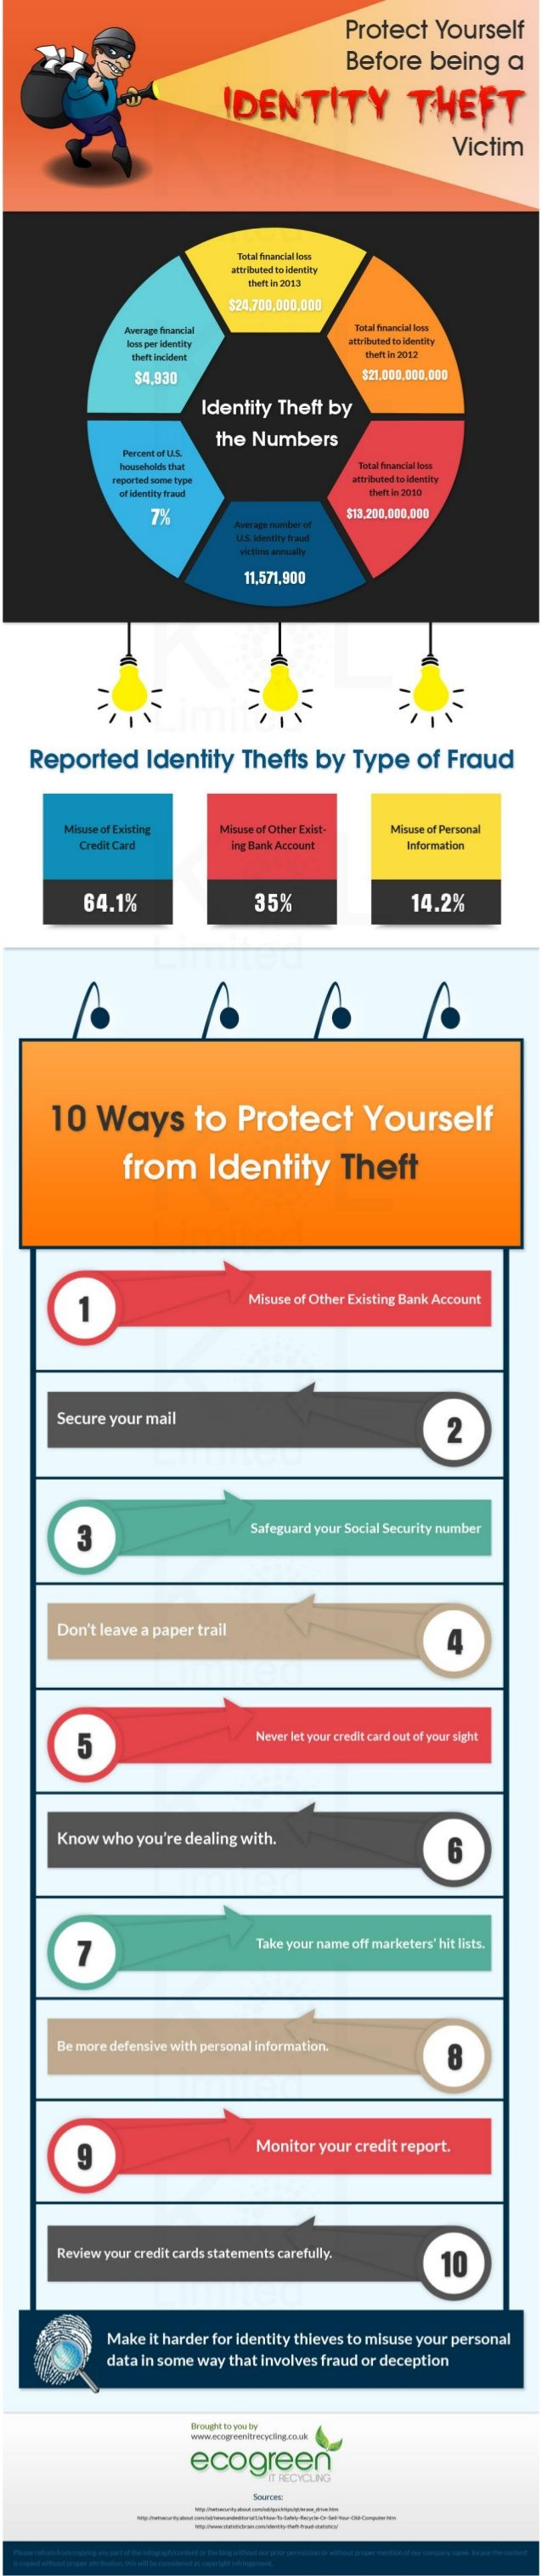 best ideas about identity theft protection protect yourself before being a identity theft victim tech cybersecurity